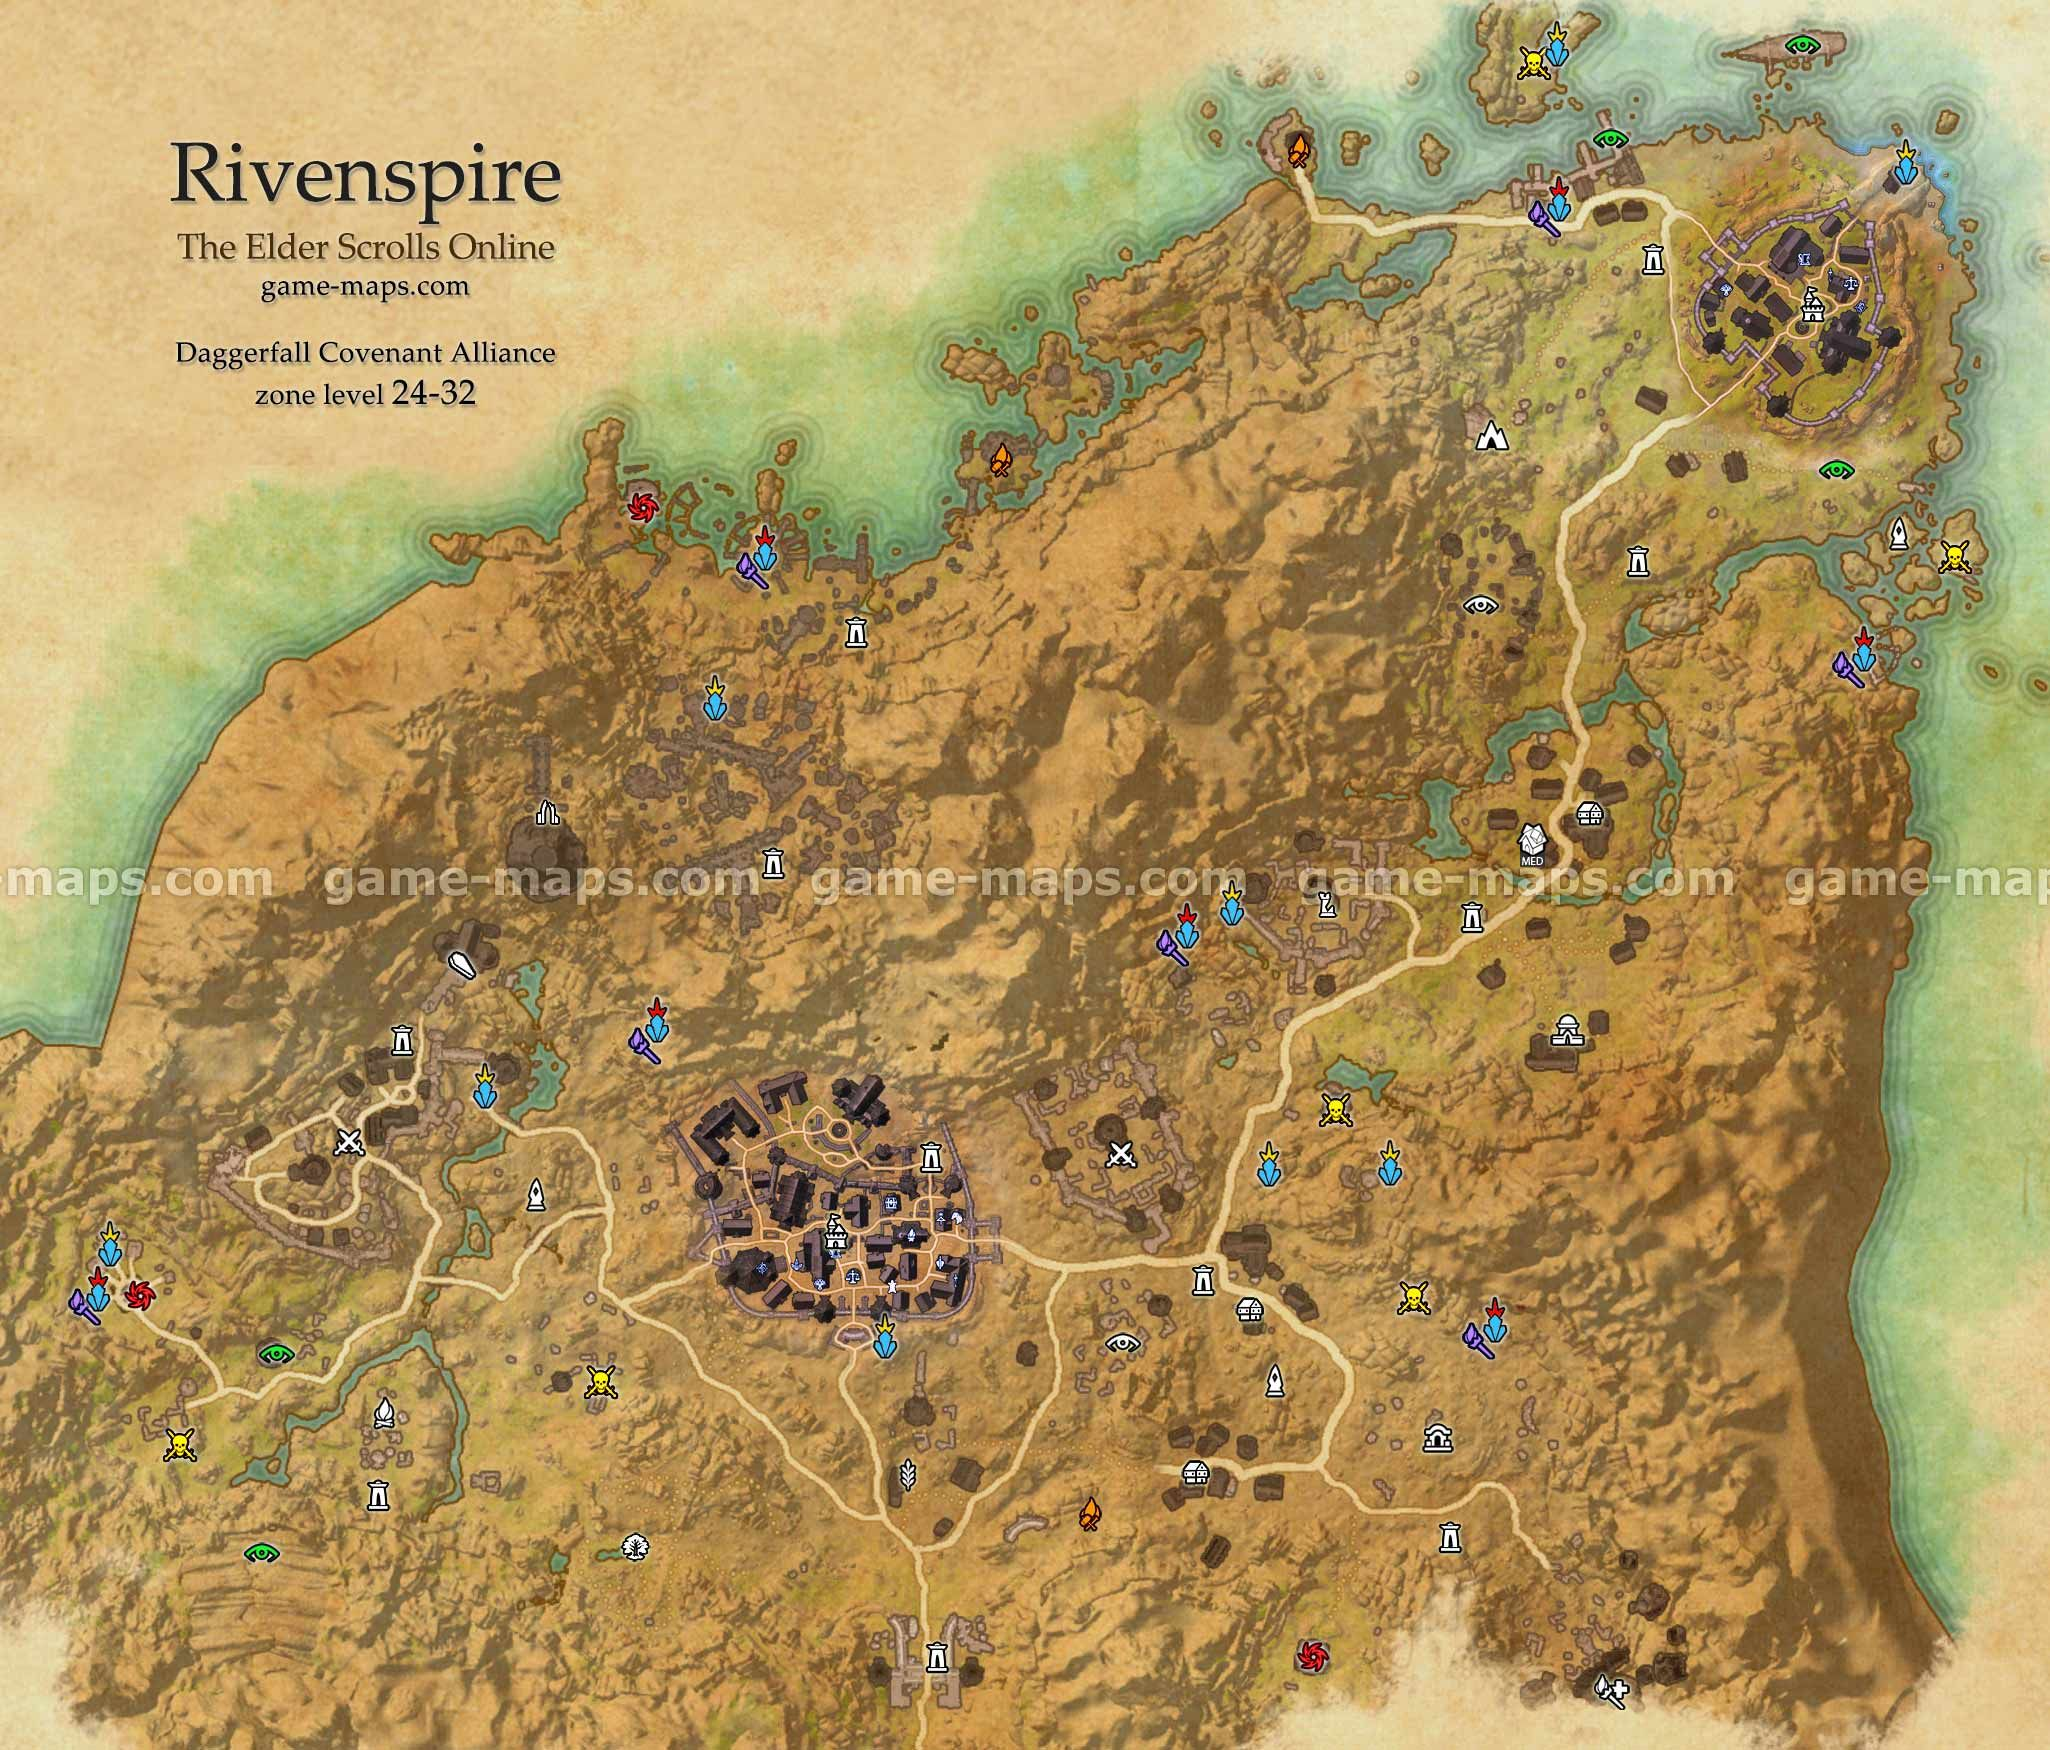 Rivenspire Zone Map Shornhelm North Point Rivenspire Is A Region